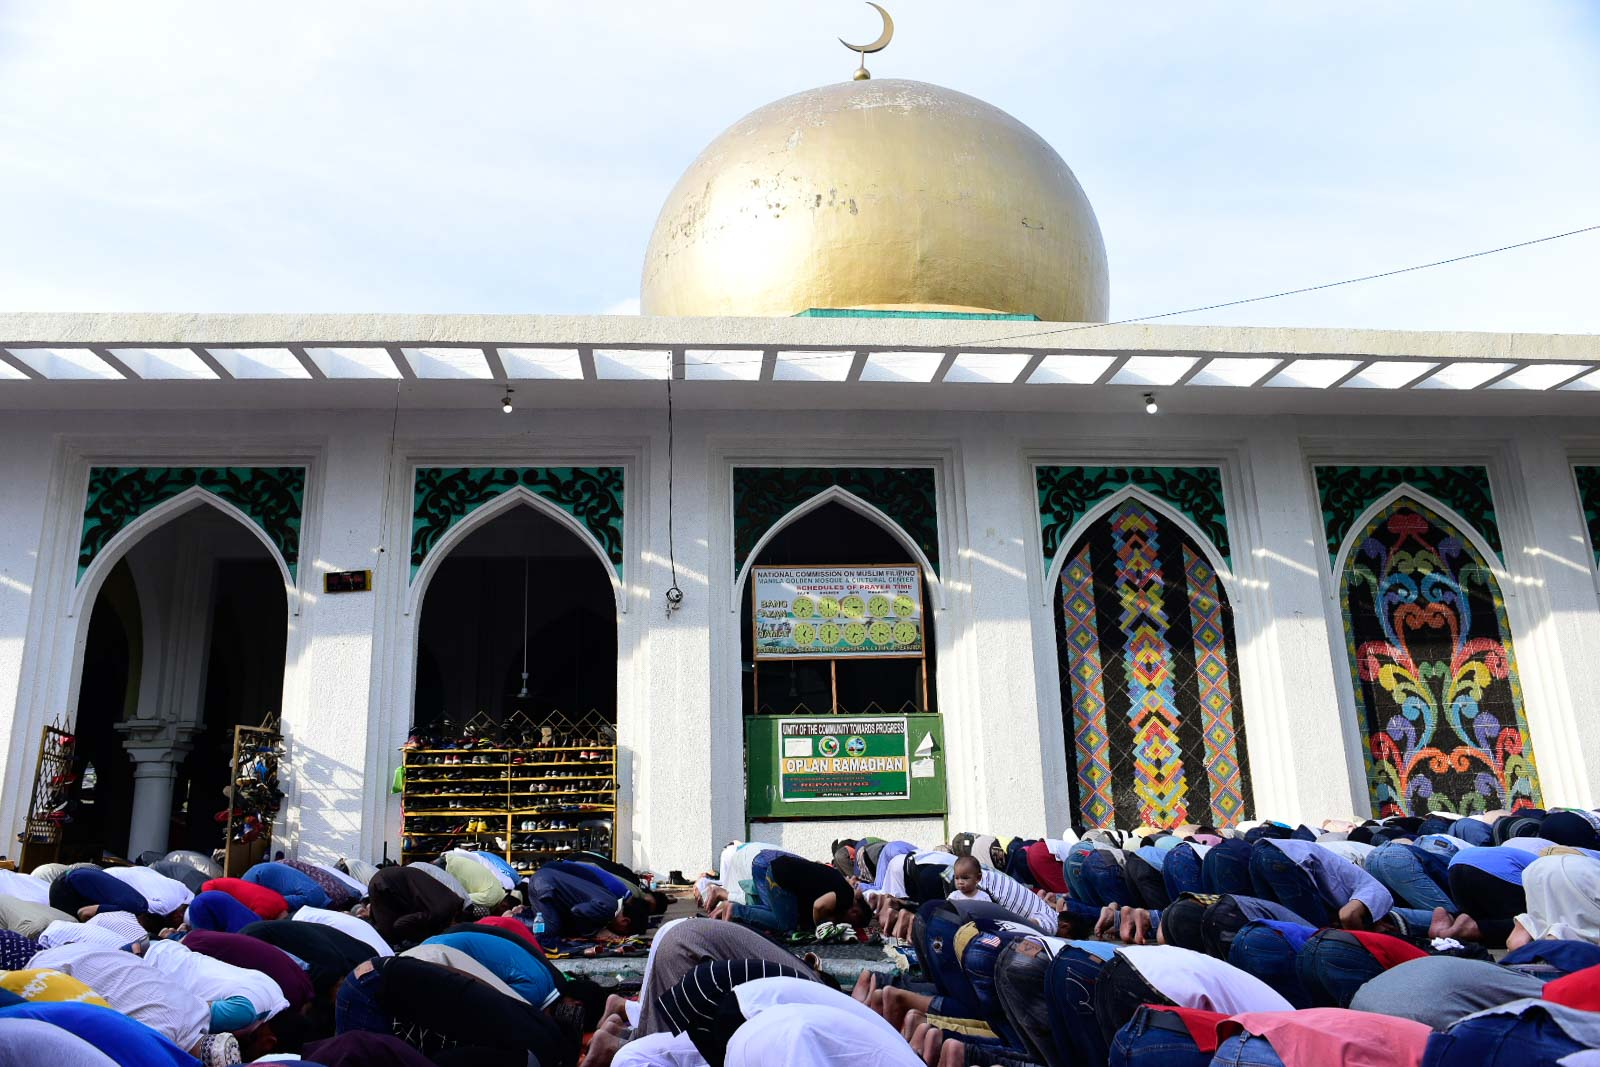 PEACE. Muslims pray outside the Golden Mosque in Quiapo, Manila during the Eid'l-Fitr, which marks the end of the holy month of Ramadan, on Wednesday, June 5. Photo by Rob Reyes/Rappler